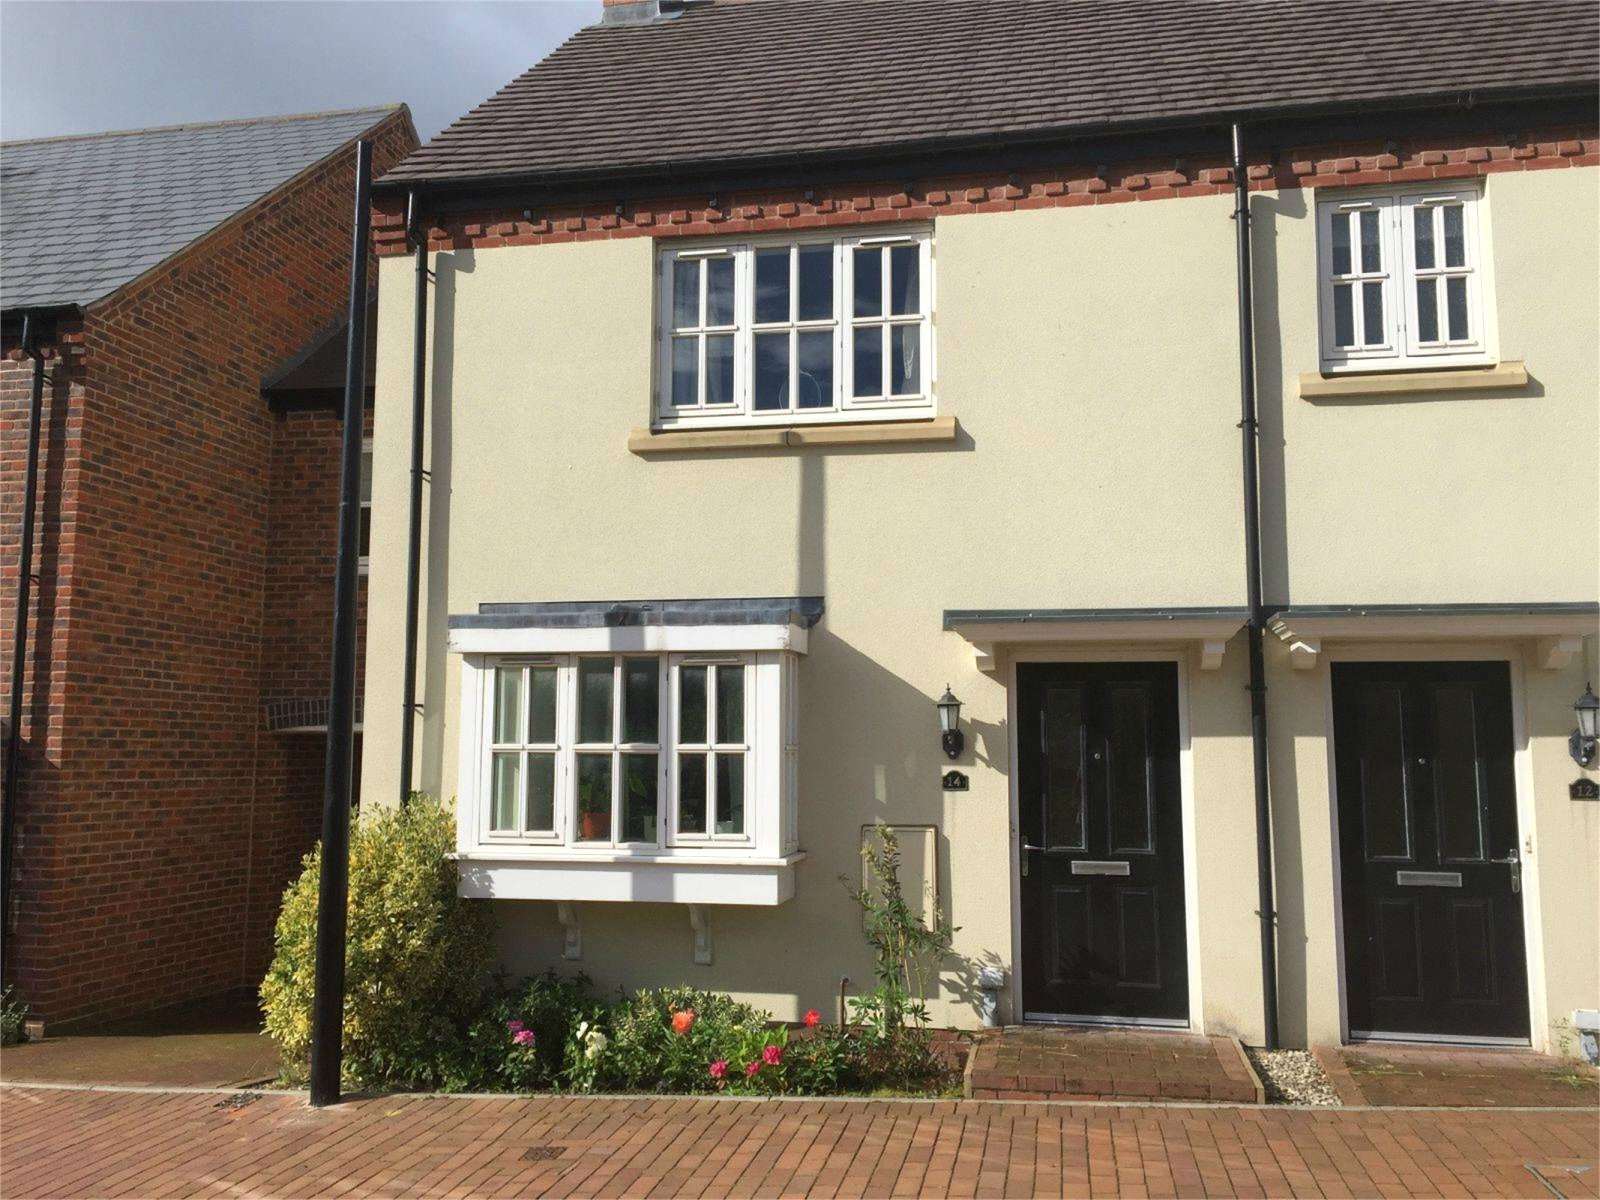 3 Bedrooms End Of Terrace House for rent in 14 Harding Wood, Lightmoor, Telford, TF4